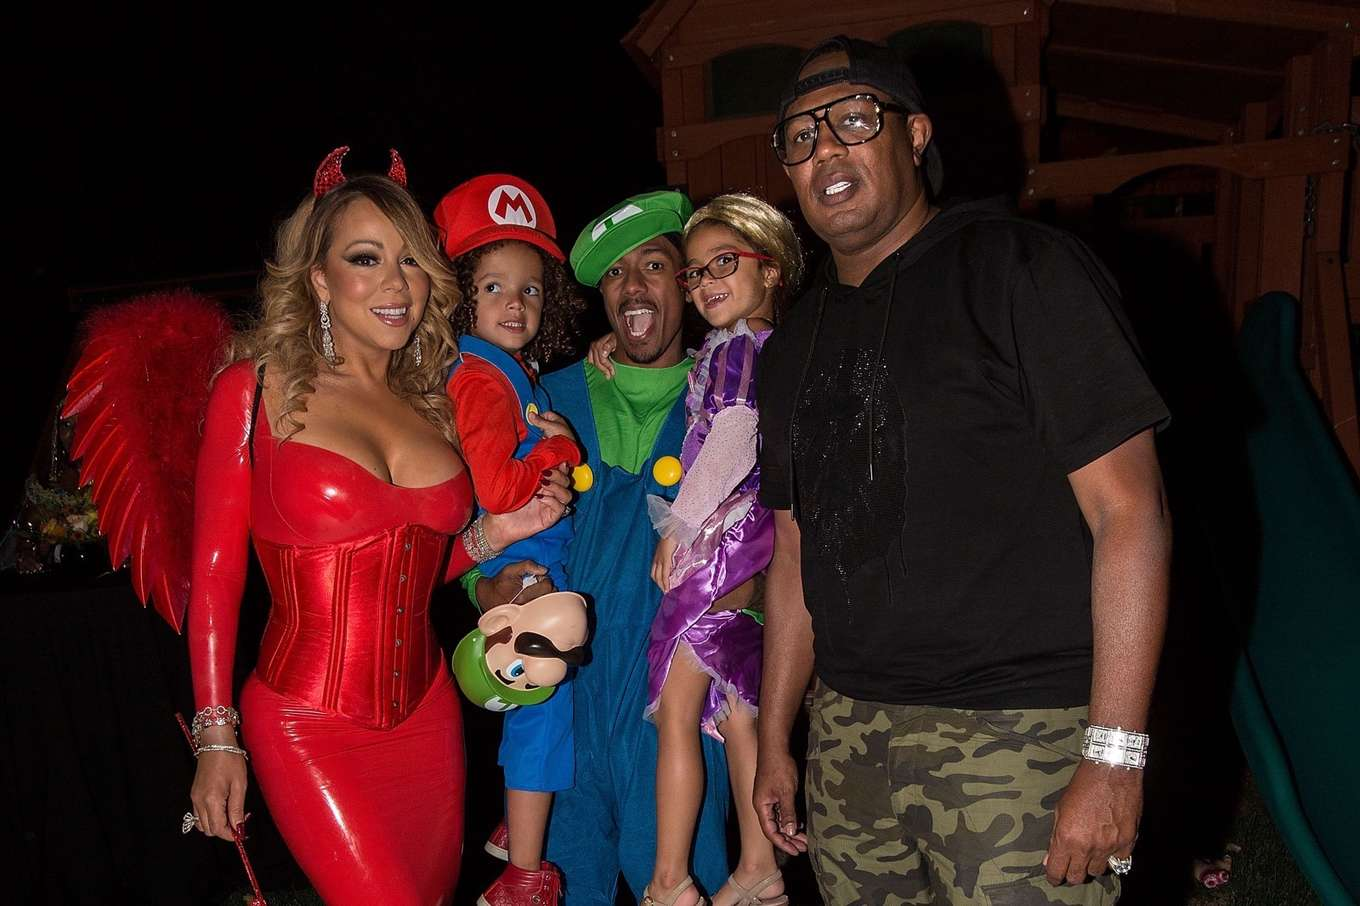 Mariah Carey in Red at Hollywood Halloween Party -14 - GotCeleb